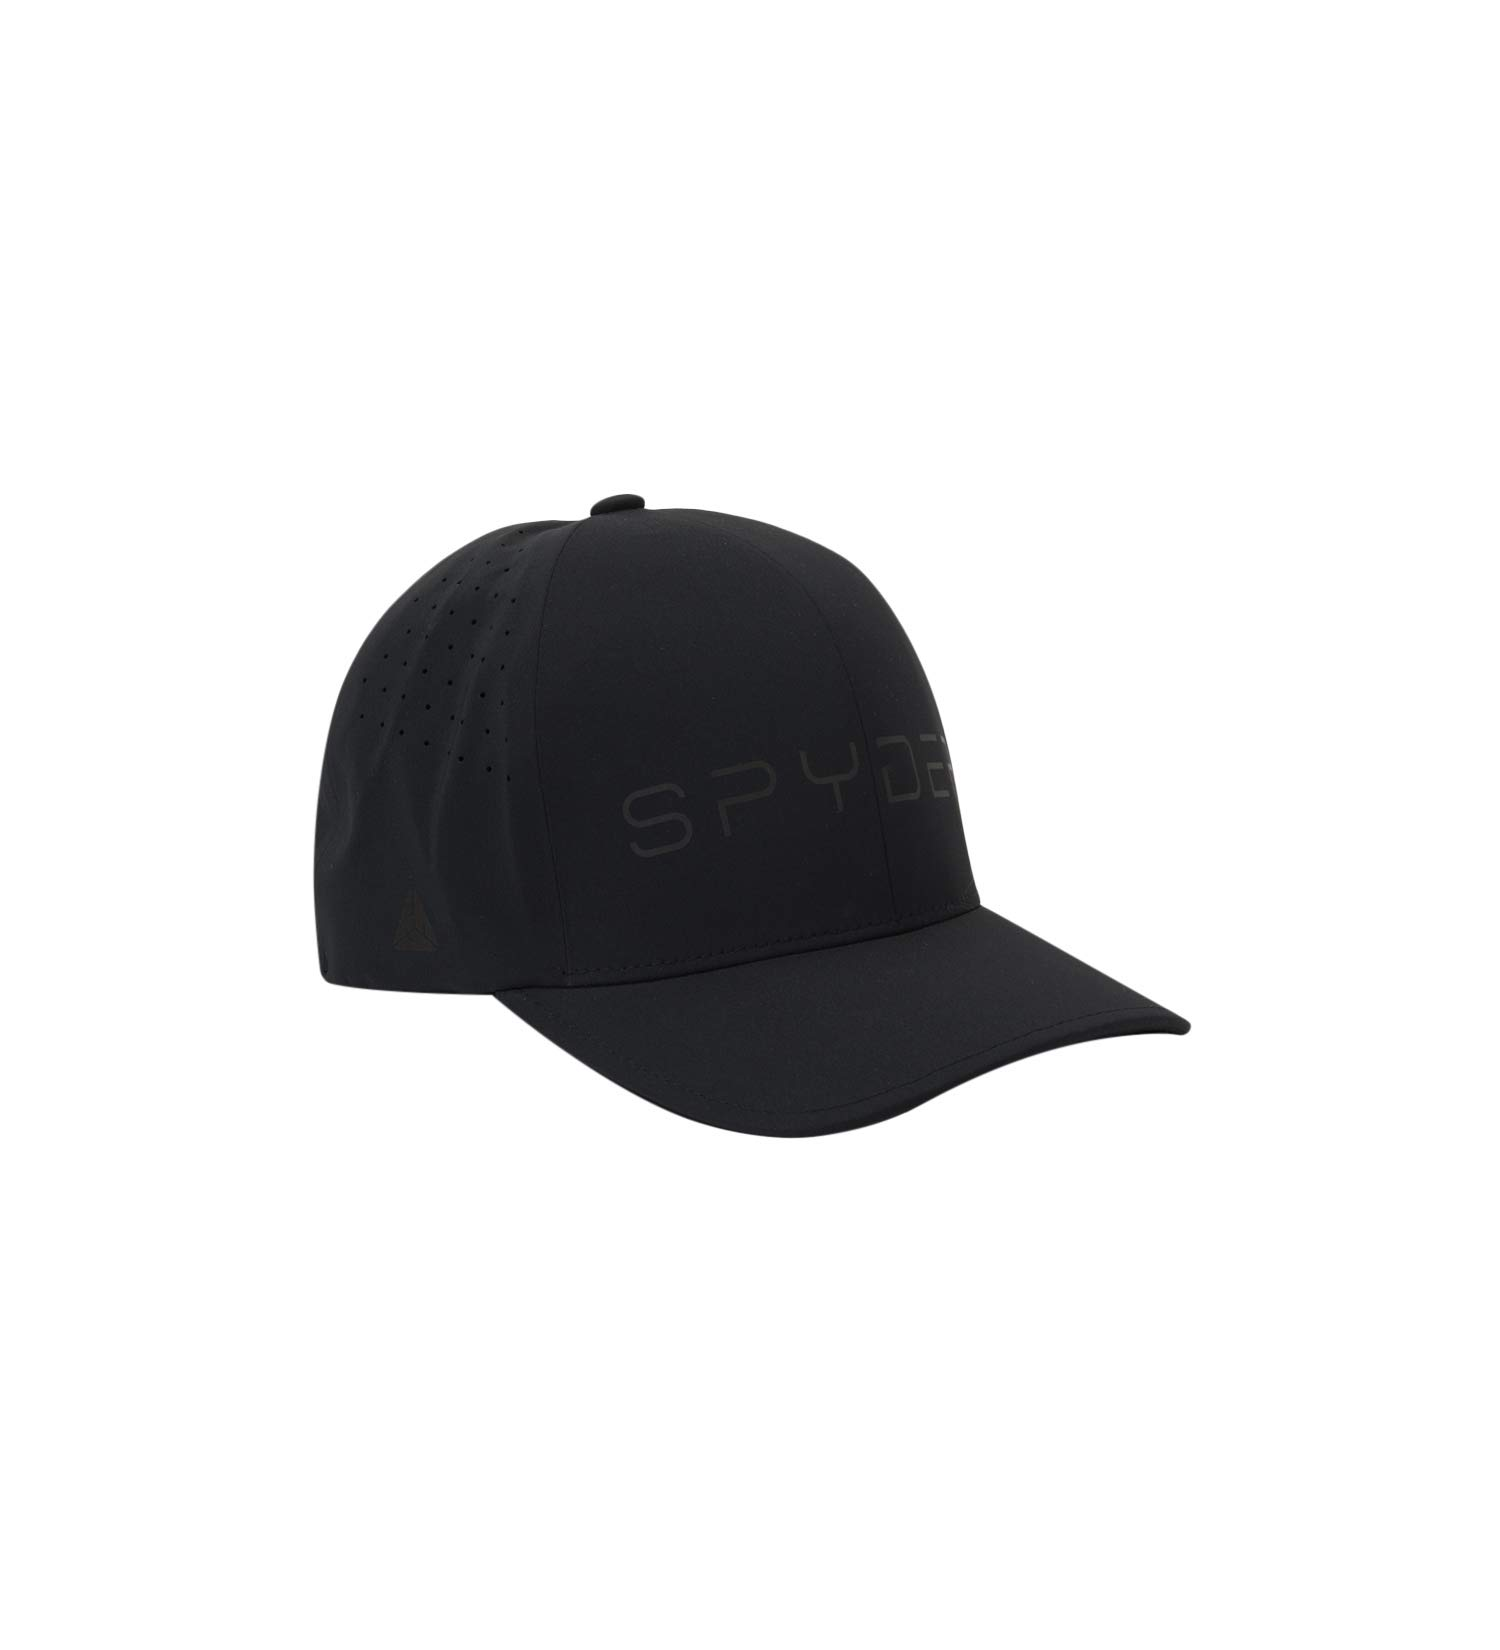 Spyder Men's Legend Cap, Black/Black, Small/Medium